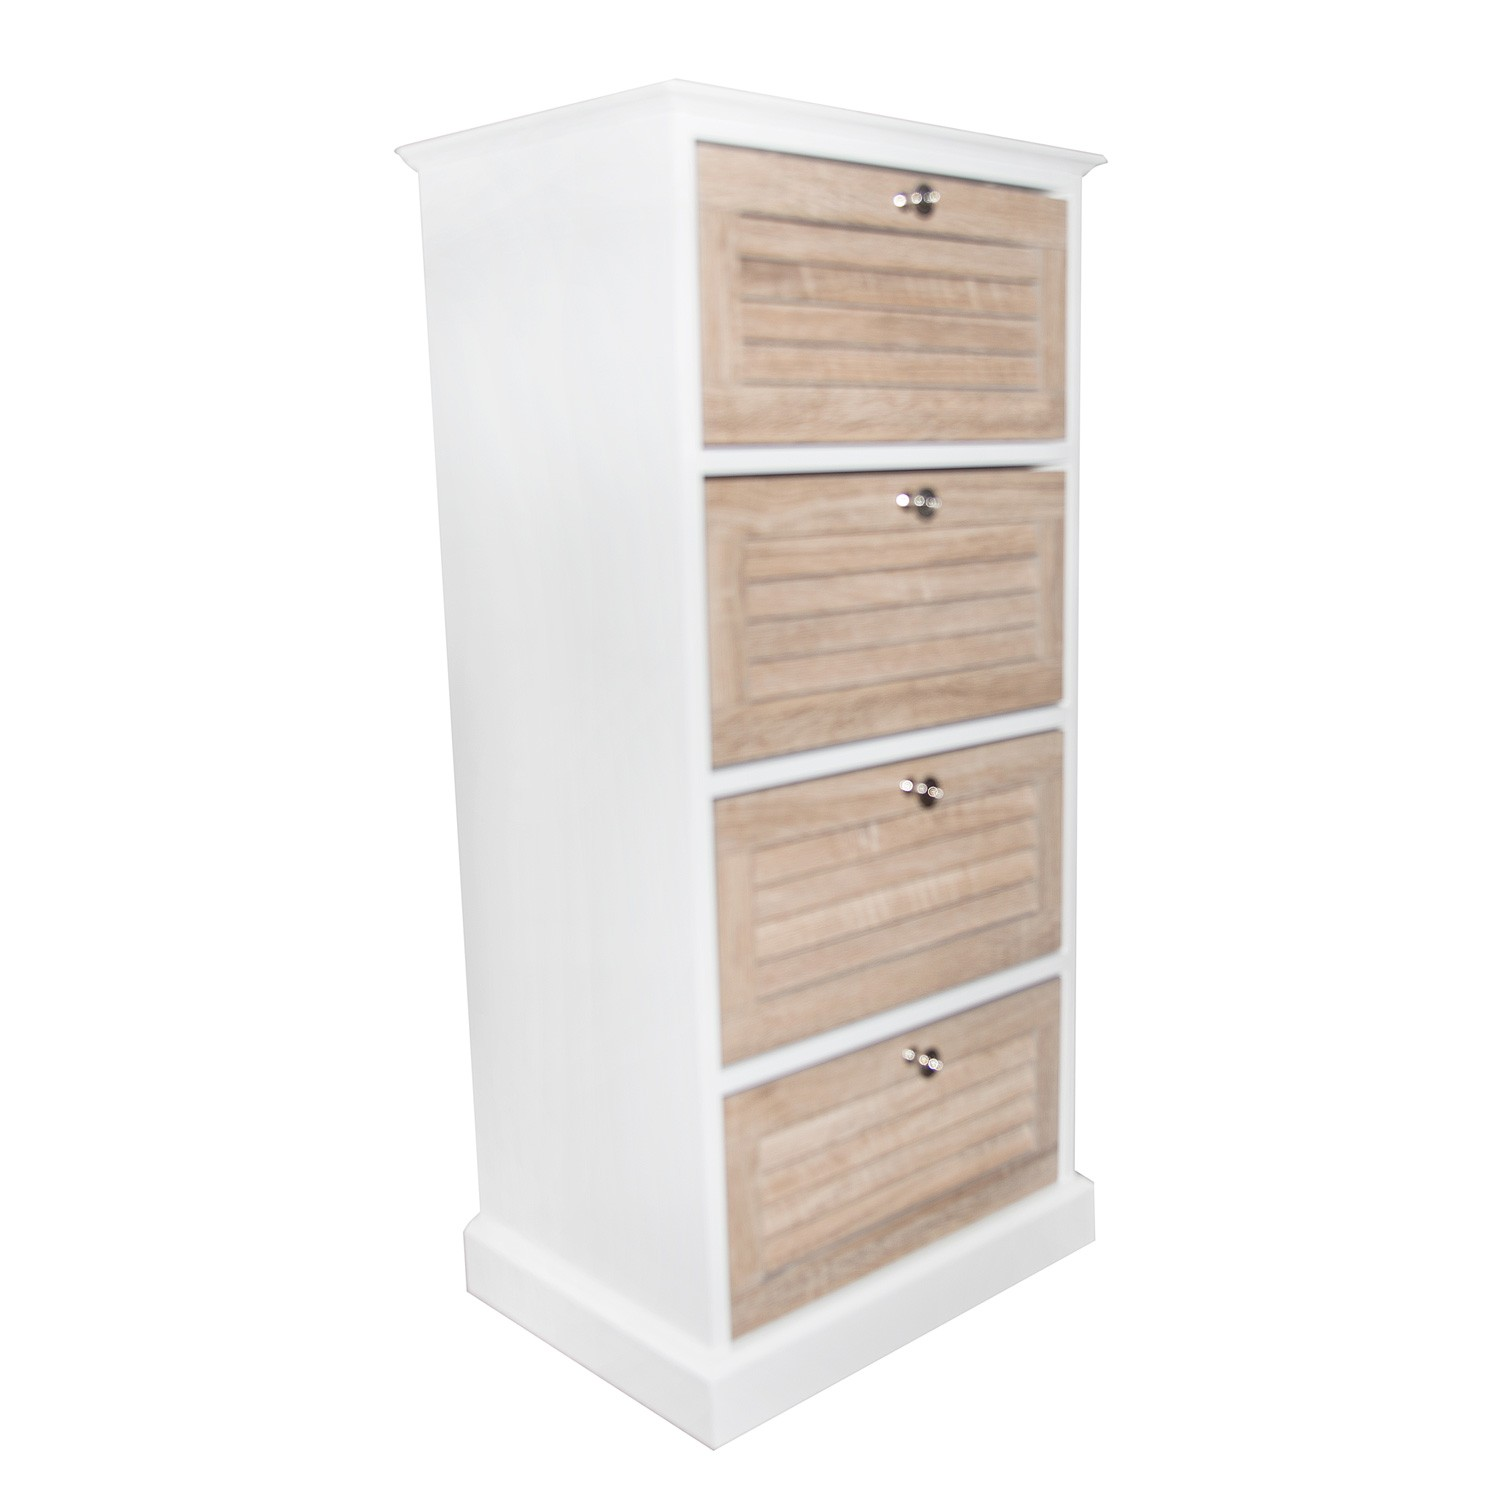 Casa vermont 4 drawer bathroom floor cabinet leekes for Bathroom floor cabinet with drawer